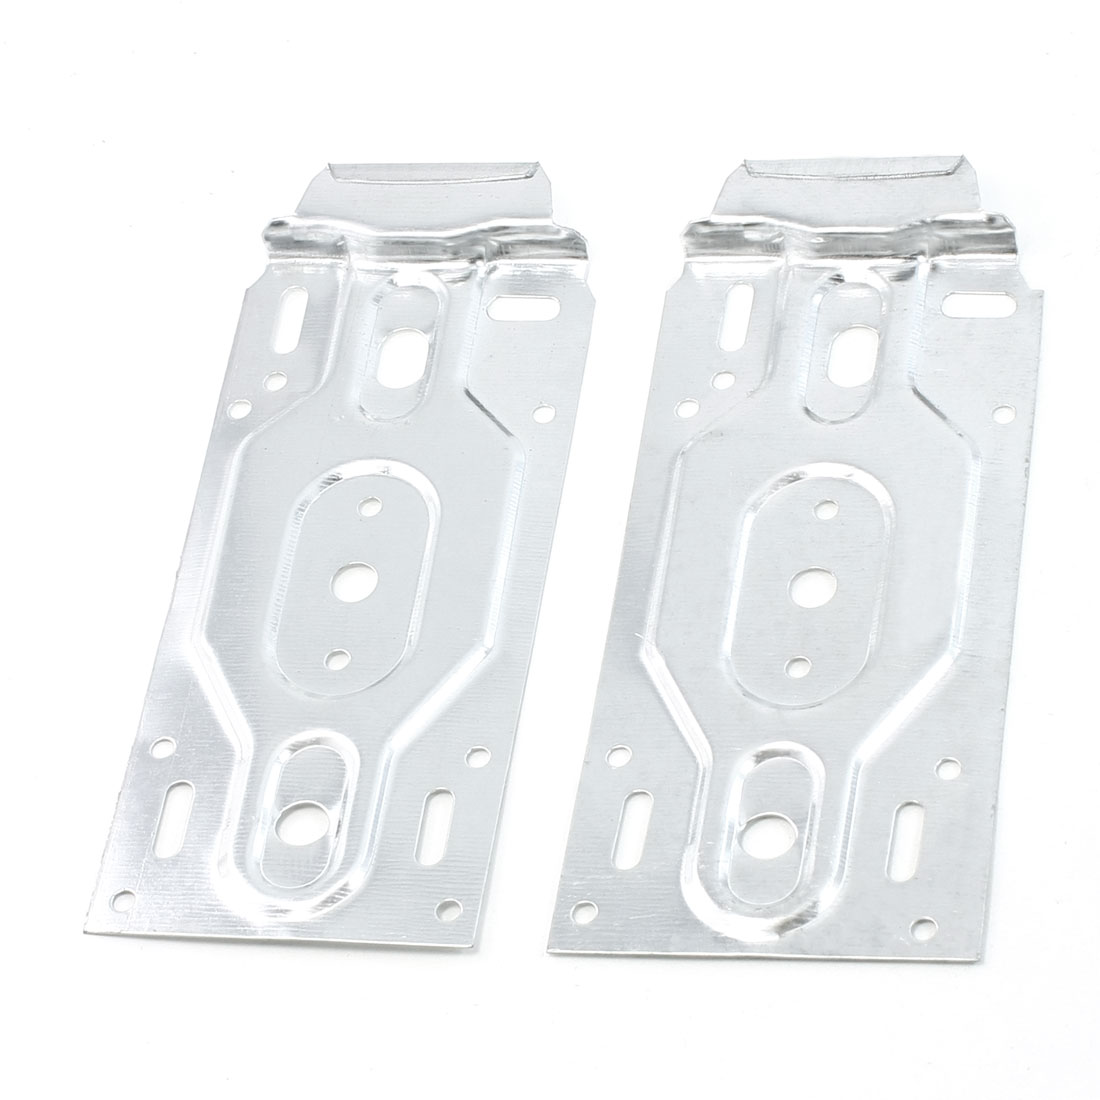 Silver Tone Metal Hollow Out Design Hanging Board Pair for Air Conditioner